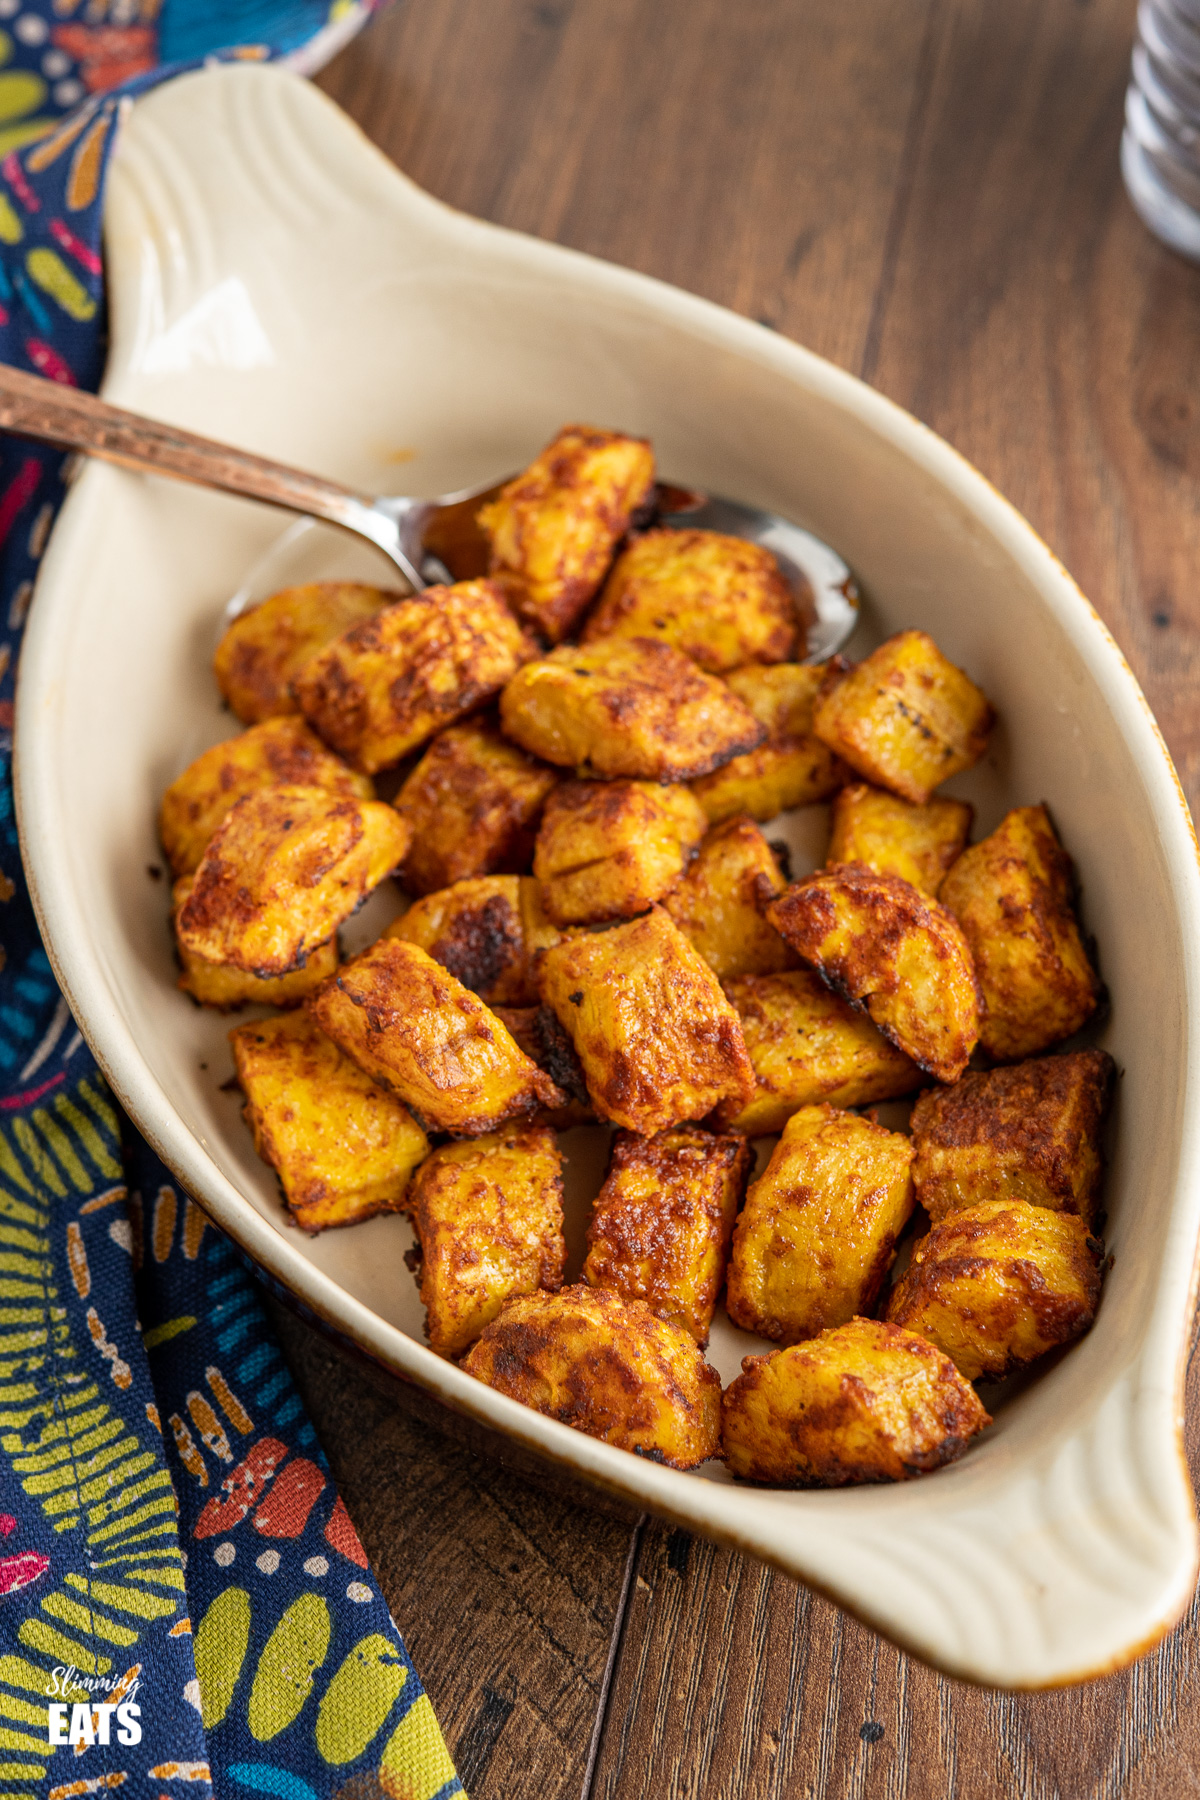 baked sweet plantain pieces in a oven oven proof brown dish with spoon on wooden board